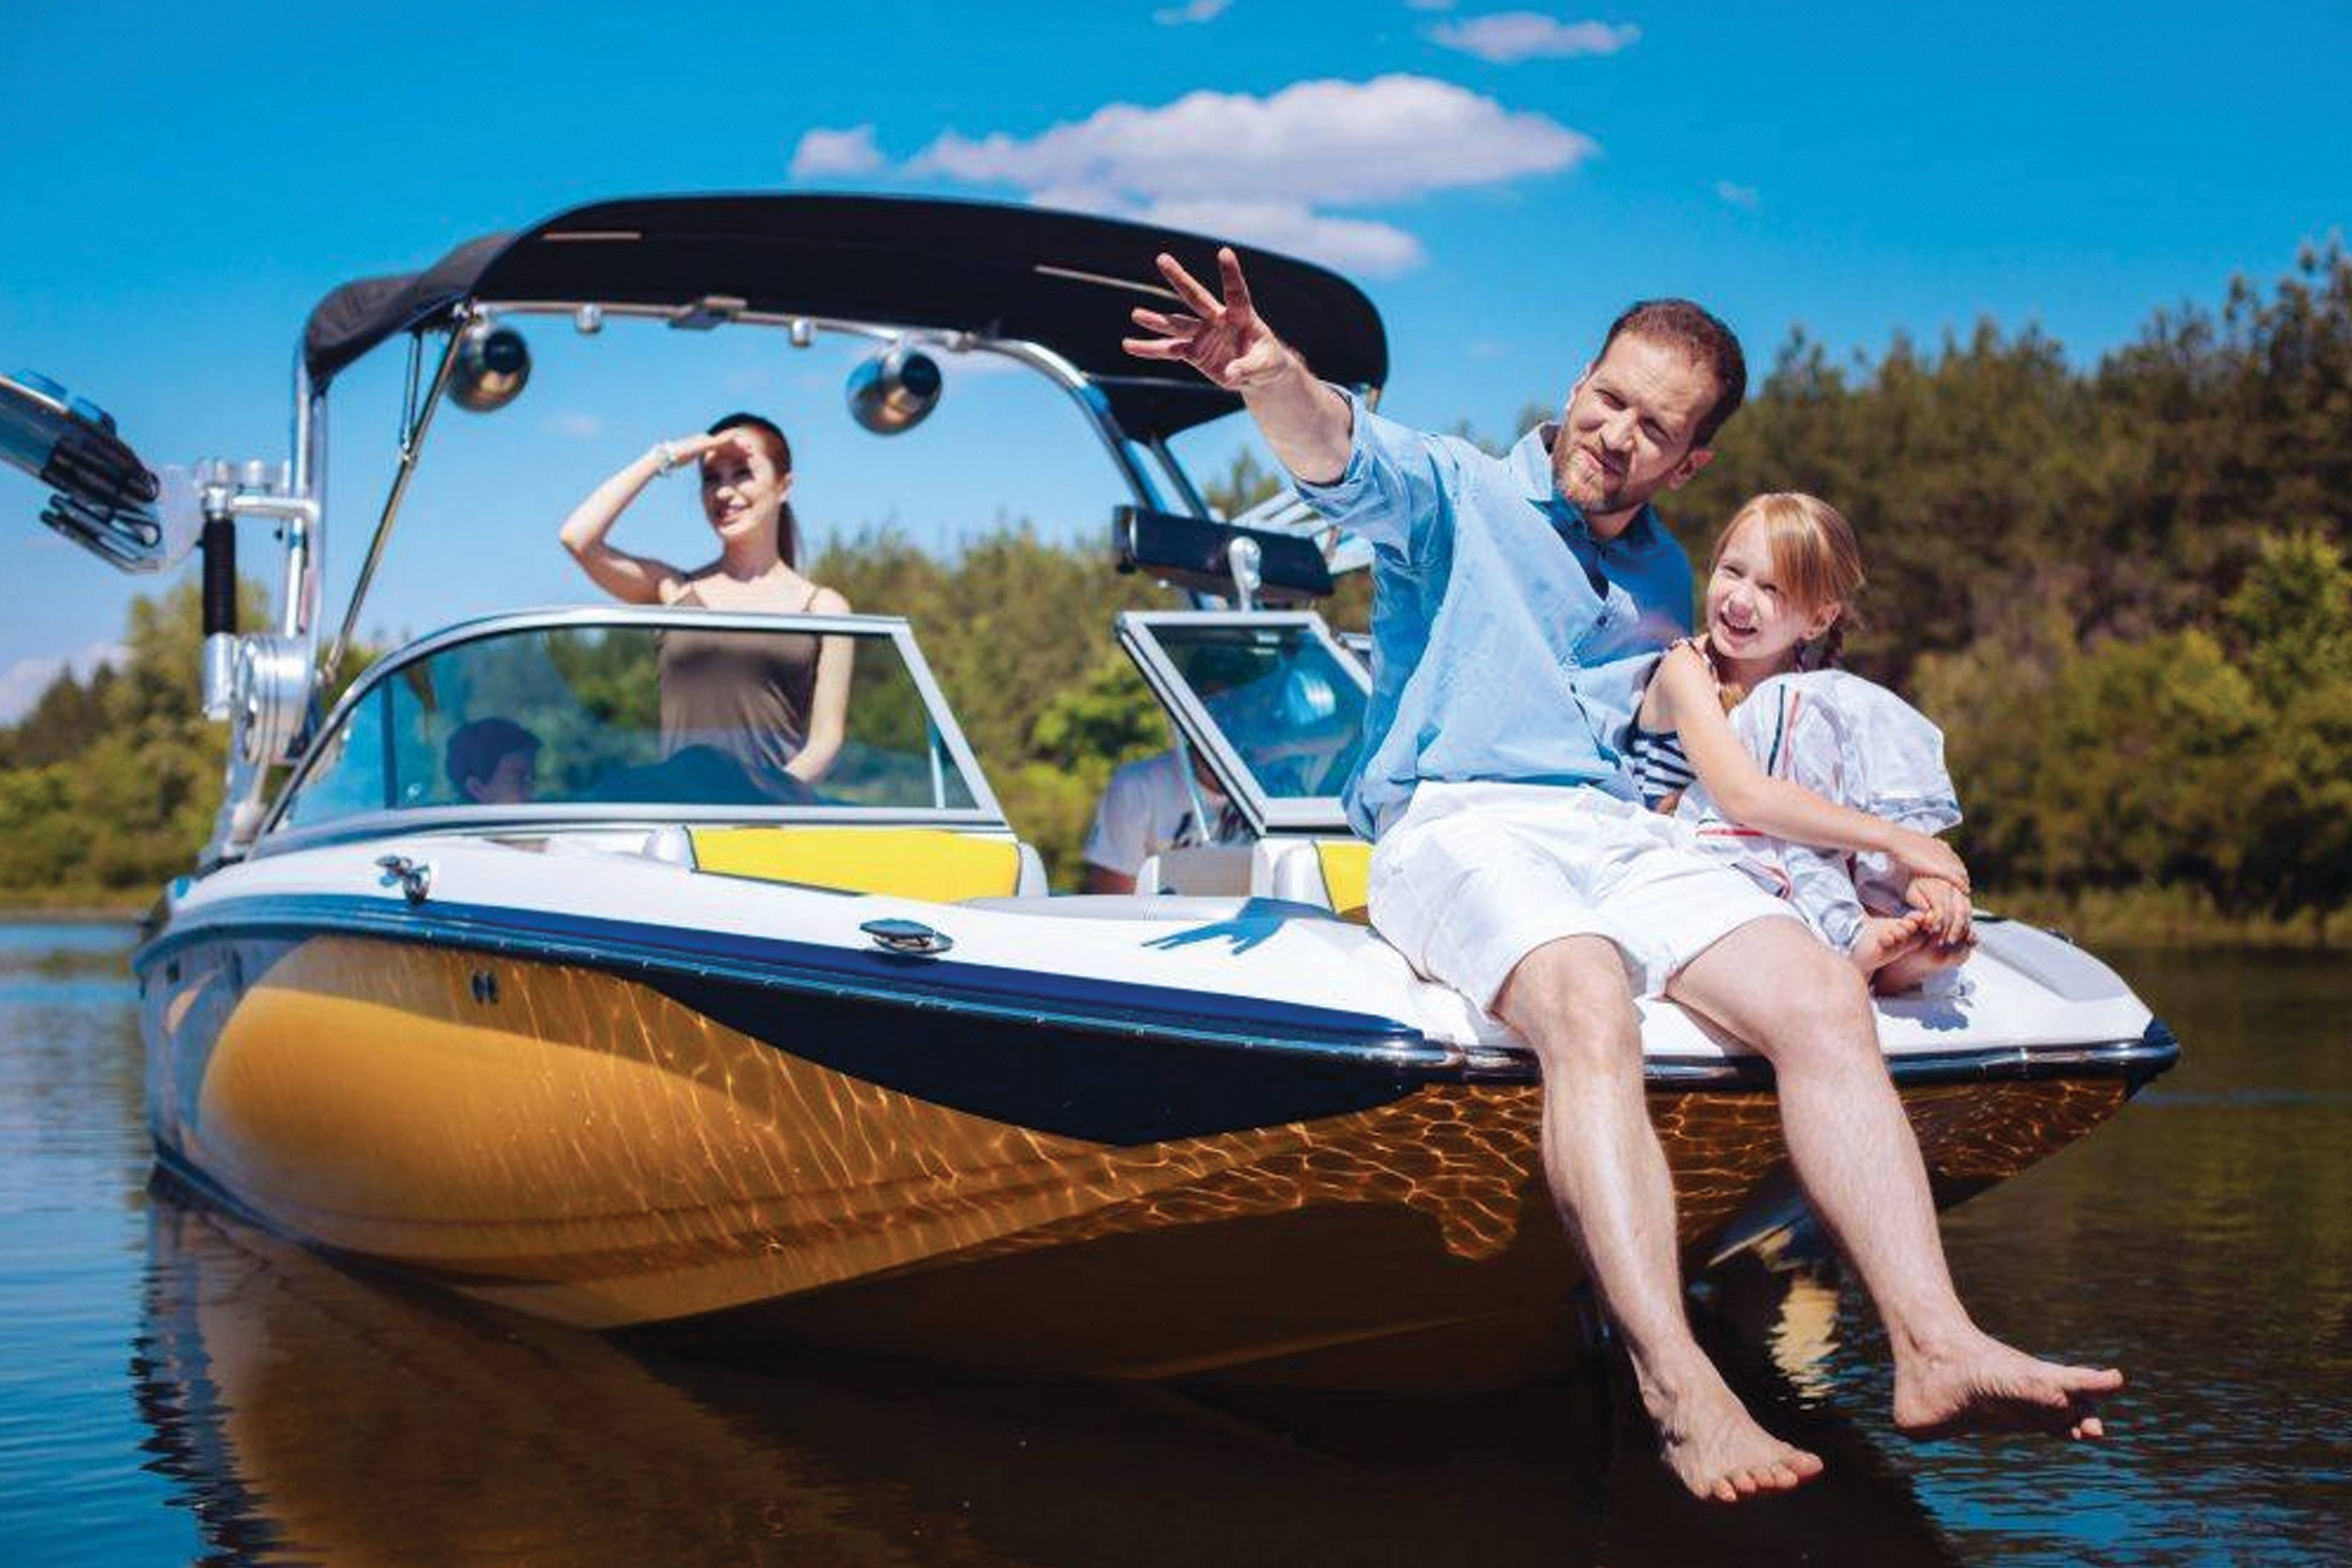 Man, woman, and child relax on a luxurious speedboat with a sunshade